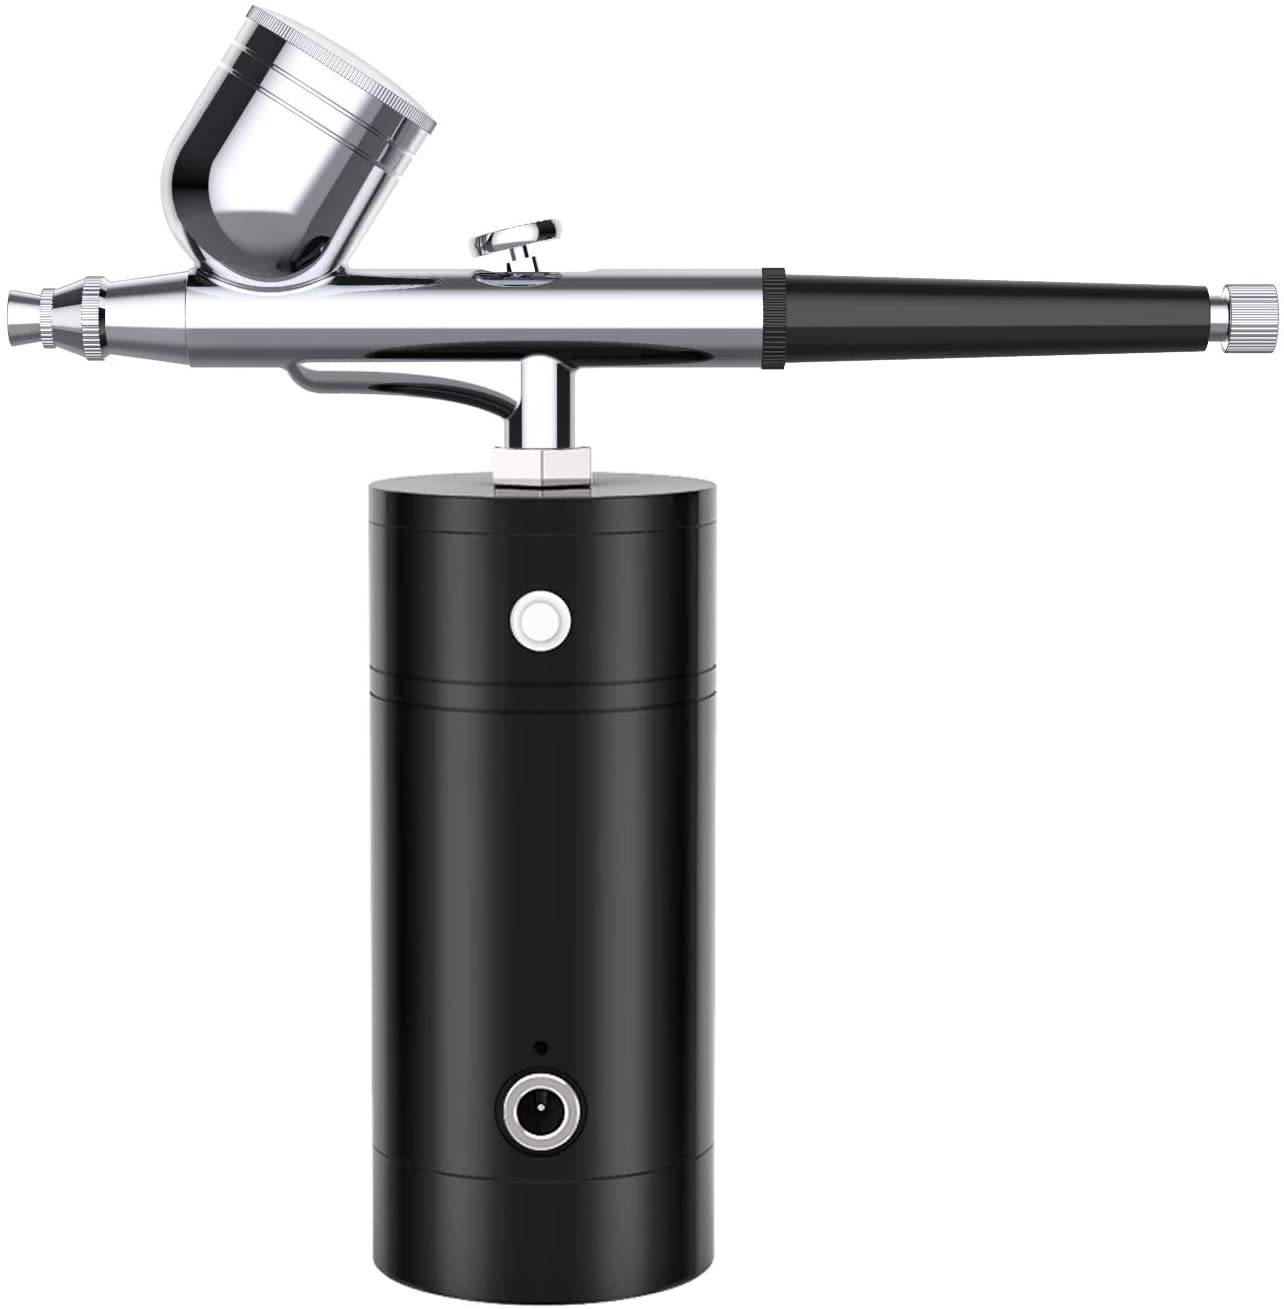 YLINGSU Airbrush Kit, Rechargeable Handheld Mini Air Compressor Airbrush Set, Portable Cordless Airbrush Gun with Low Noise for Makeup, Tattoo, Nail Art, Face Paint, Cake Decor